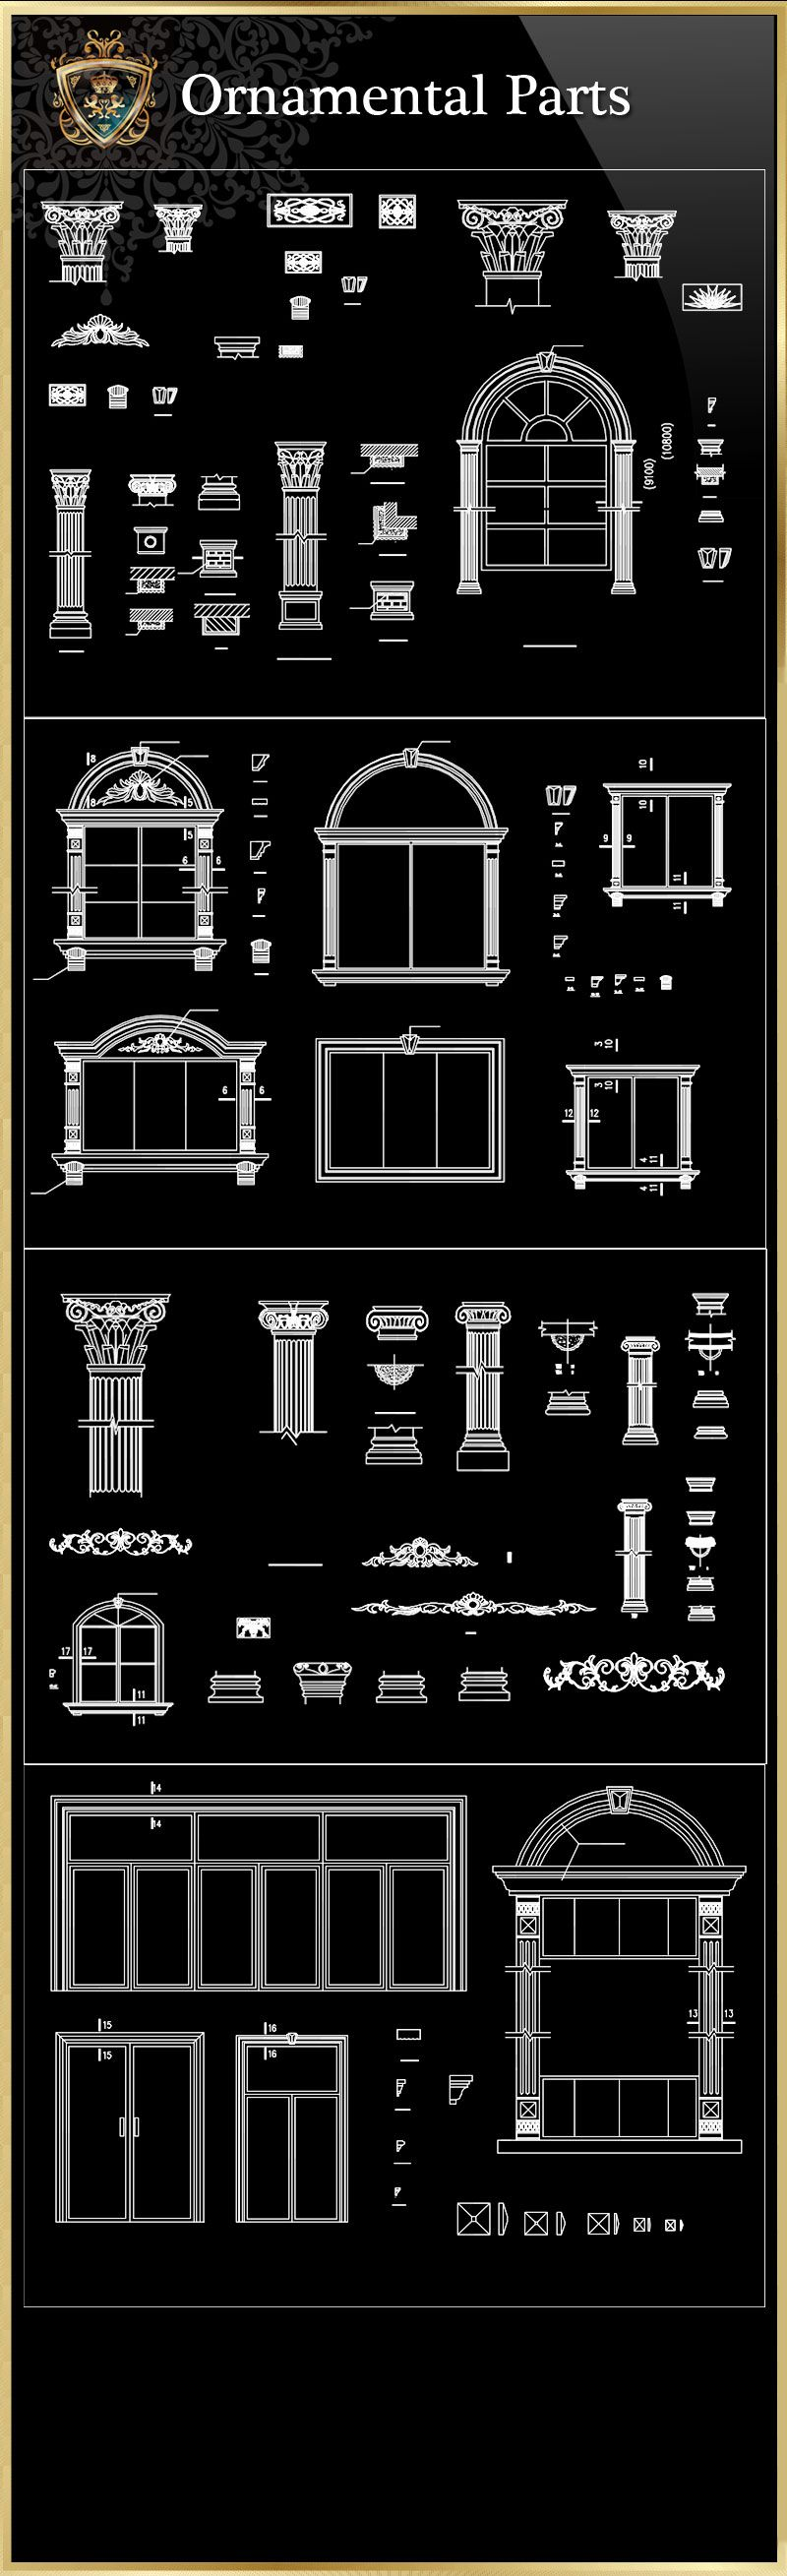 ☆【Ornamental Parts Of Buildings 8】Download Luxury Architectural Design CAD  Drawings